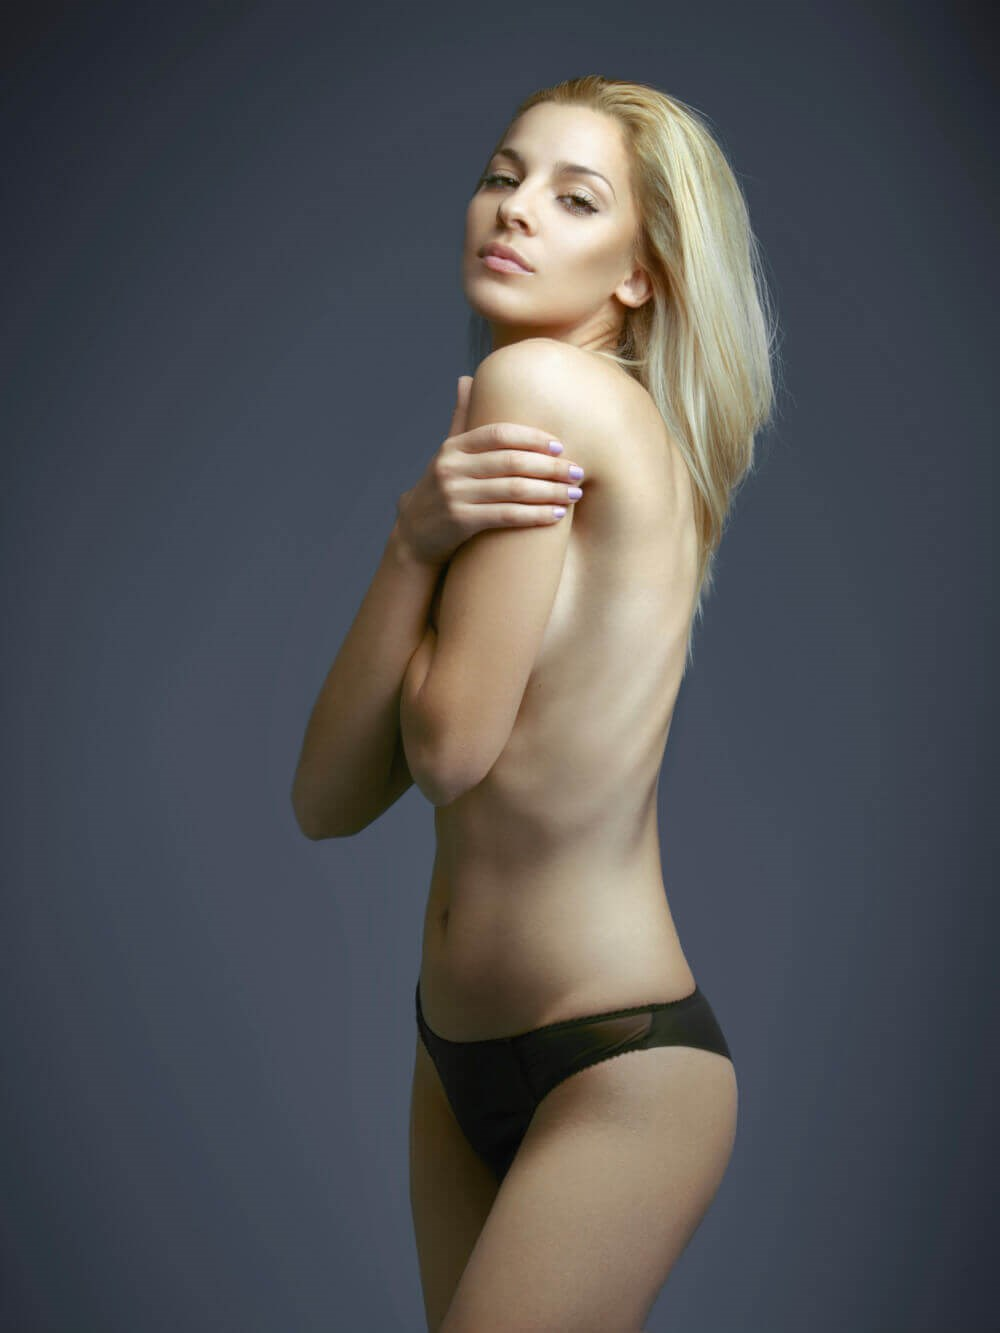 North Shore Cosmetic Surgery Blog | When Is It Time For New Breast Implants? Things To Look For